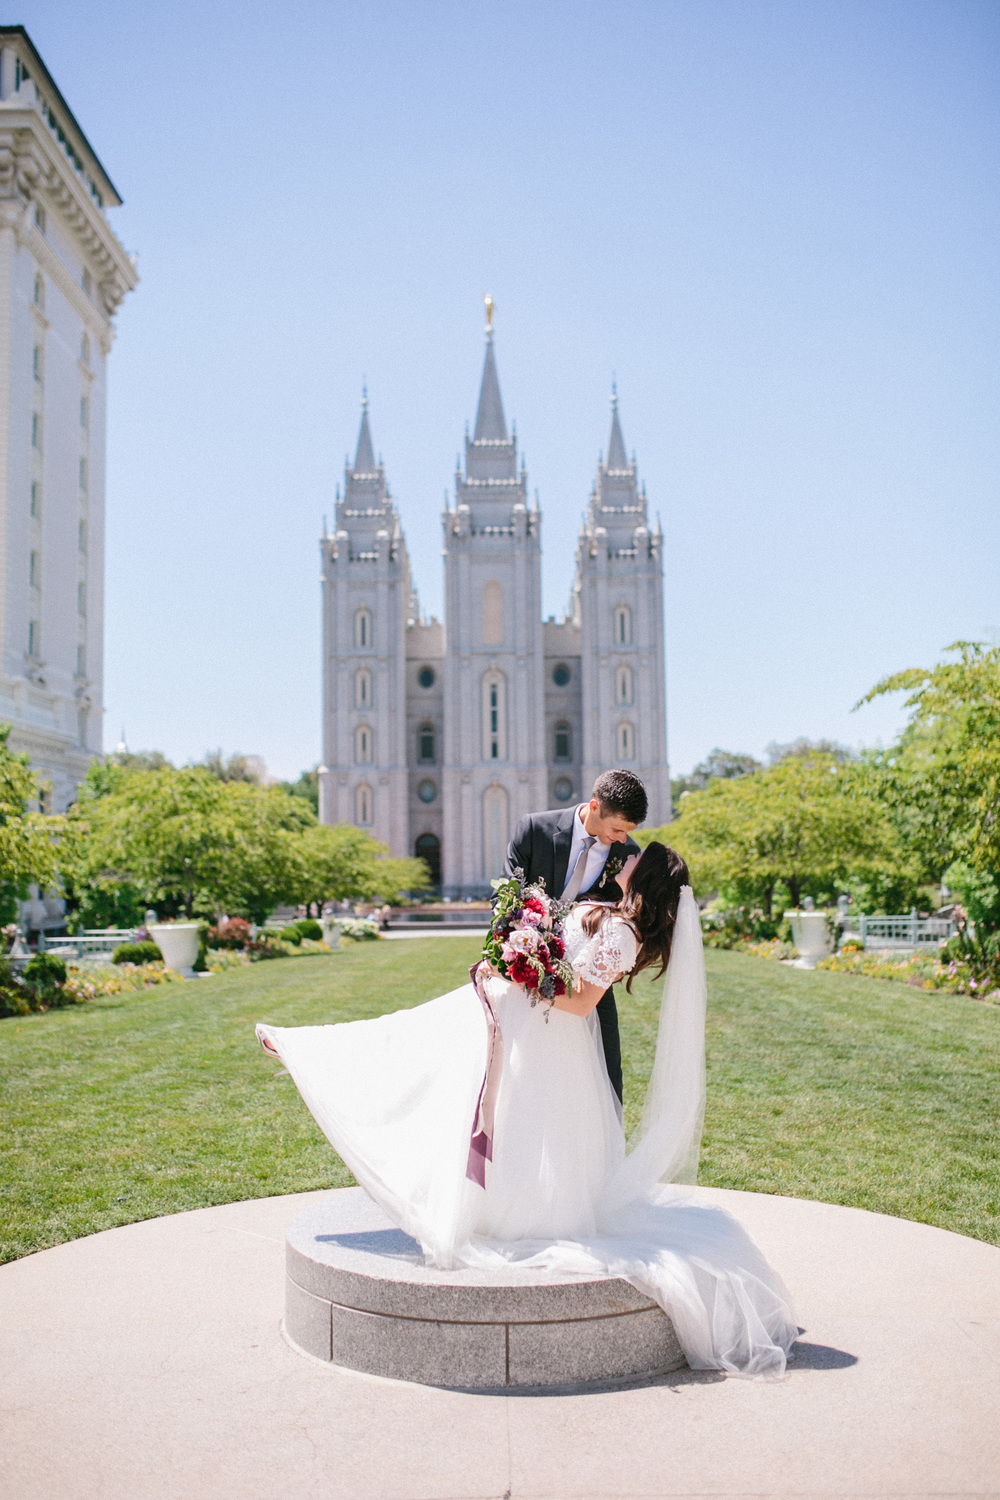 Sandy, Utah Wedding | Jacque Lynn Photography | Michelle Leo Events | Utah Wedding Designer and Event Planner